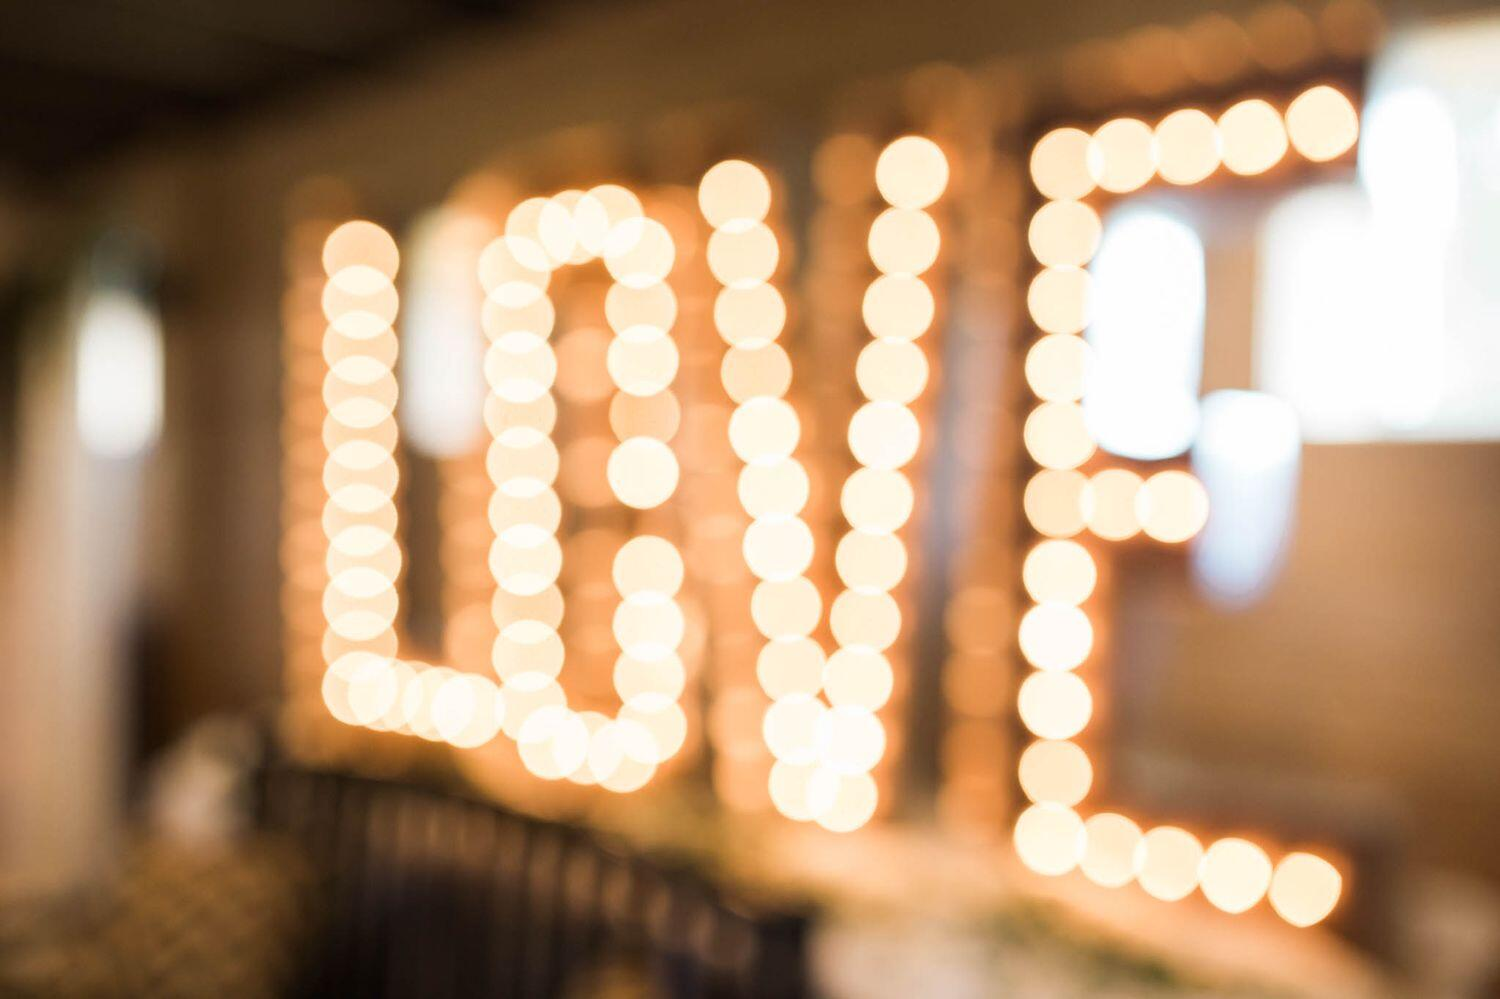 love spelled out in bulb lights